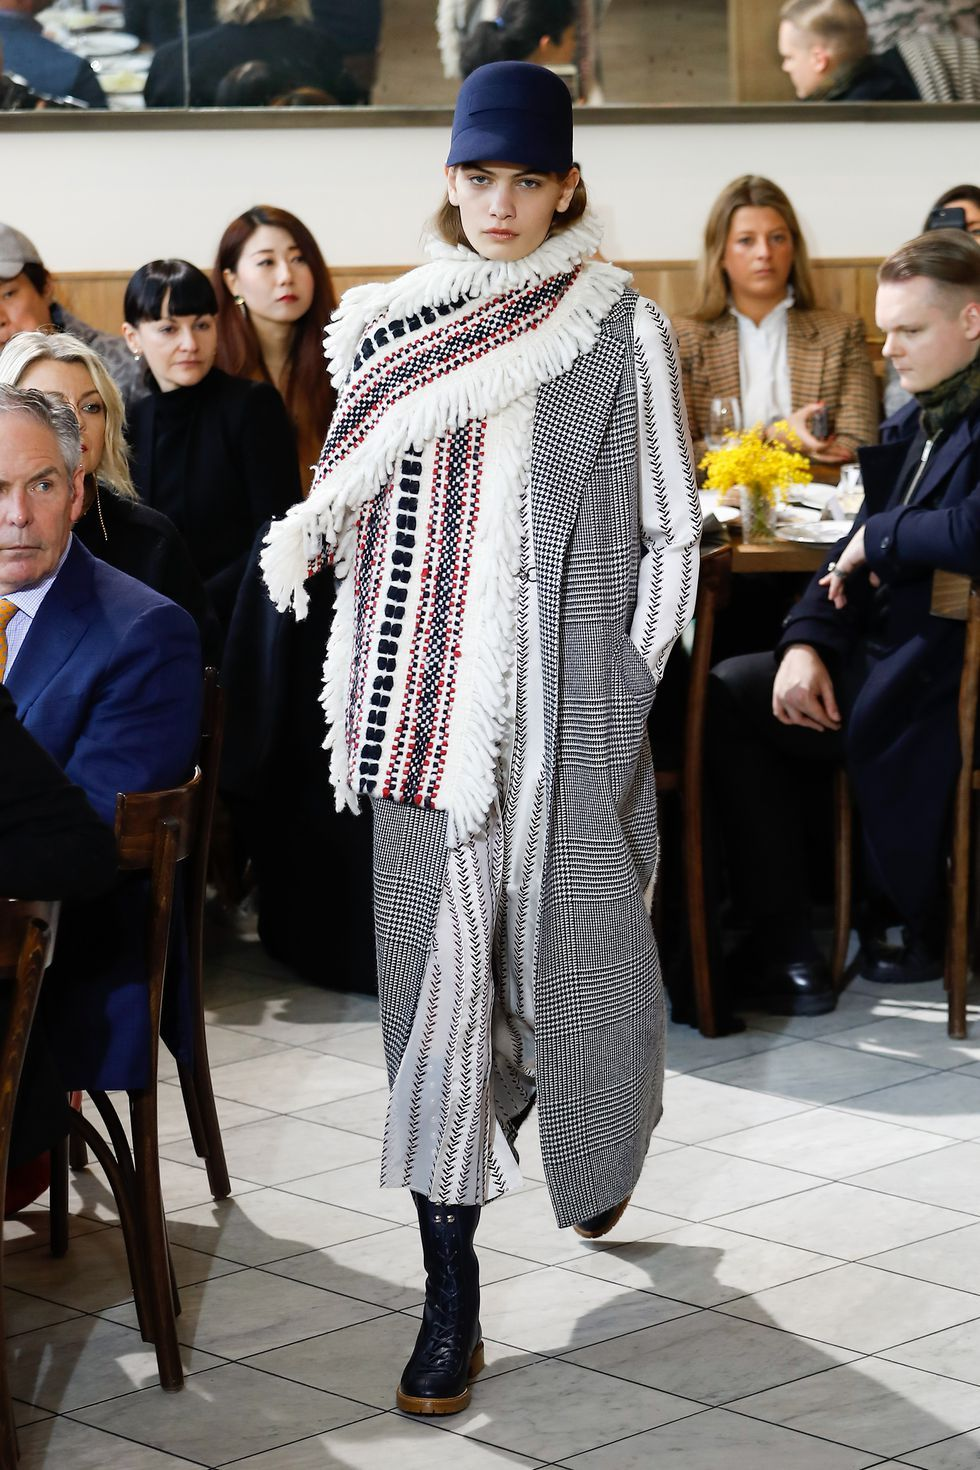 8 Major Street Style Trends From The Men's SS18 Fashion Weeks 8 Major Street Style Trends From The Men's SS18 Fashion Weeks new foto